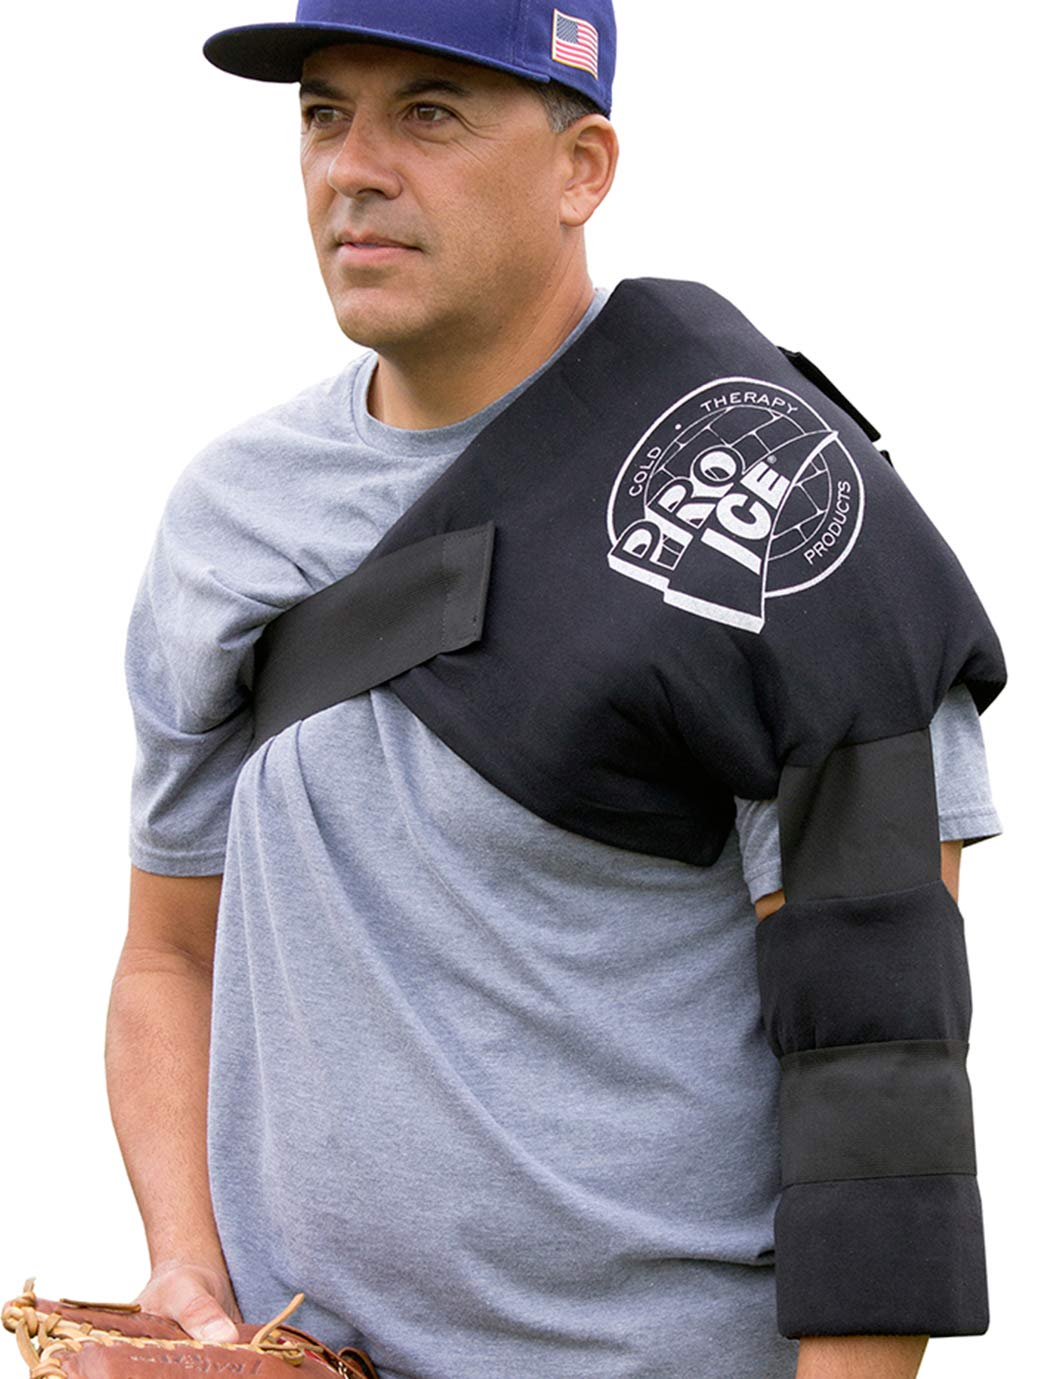 Pro Ice Cold Therapy Wrap for PRO Shoulder Elbow Arm Ice Pack PI240 to Treat Rotator Cuff Injury with Icing and Compression by PRO ICE COLD THERAPY PRODUCTS